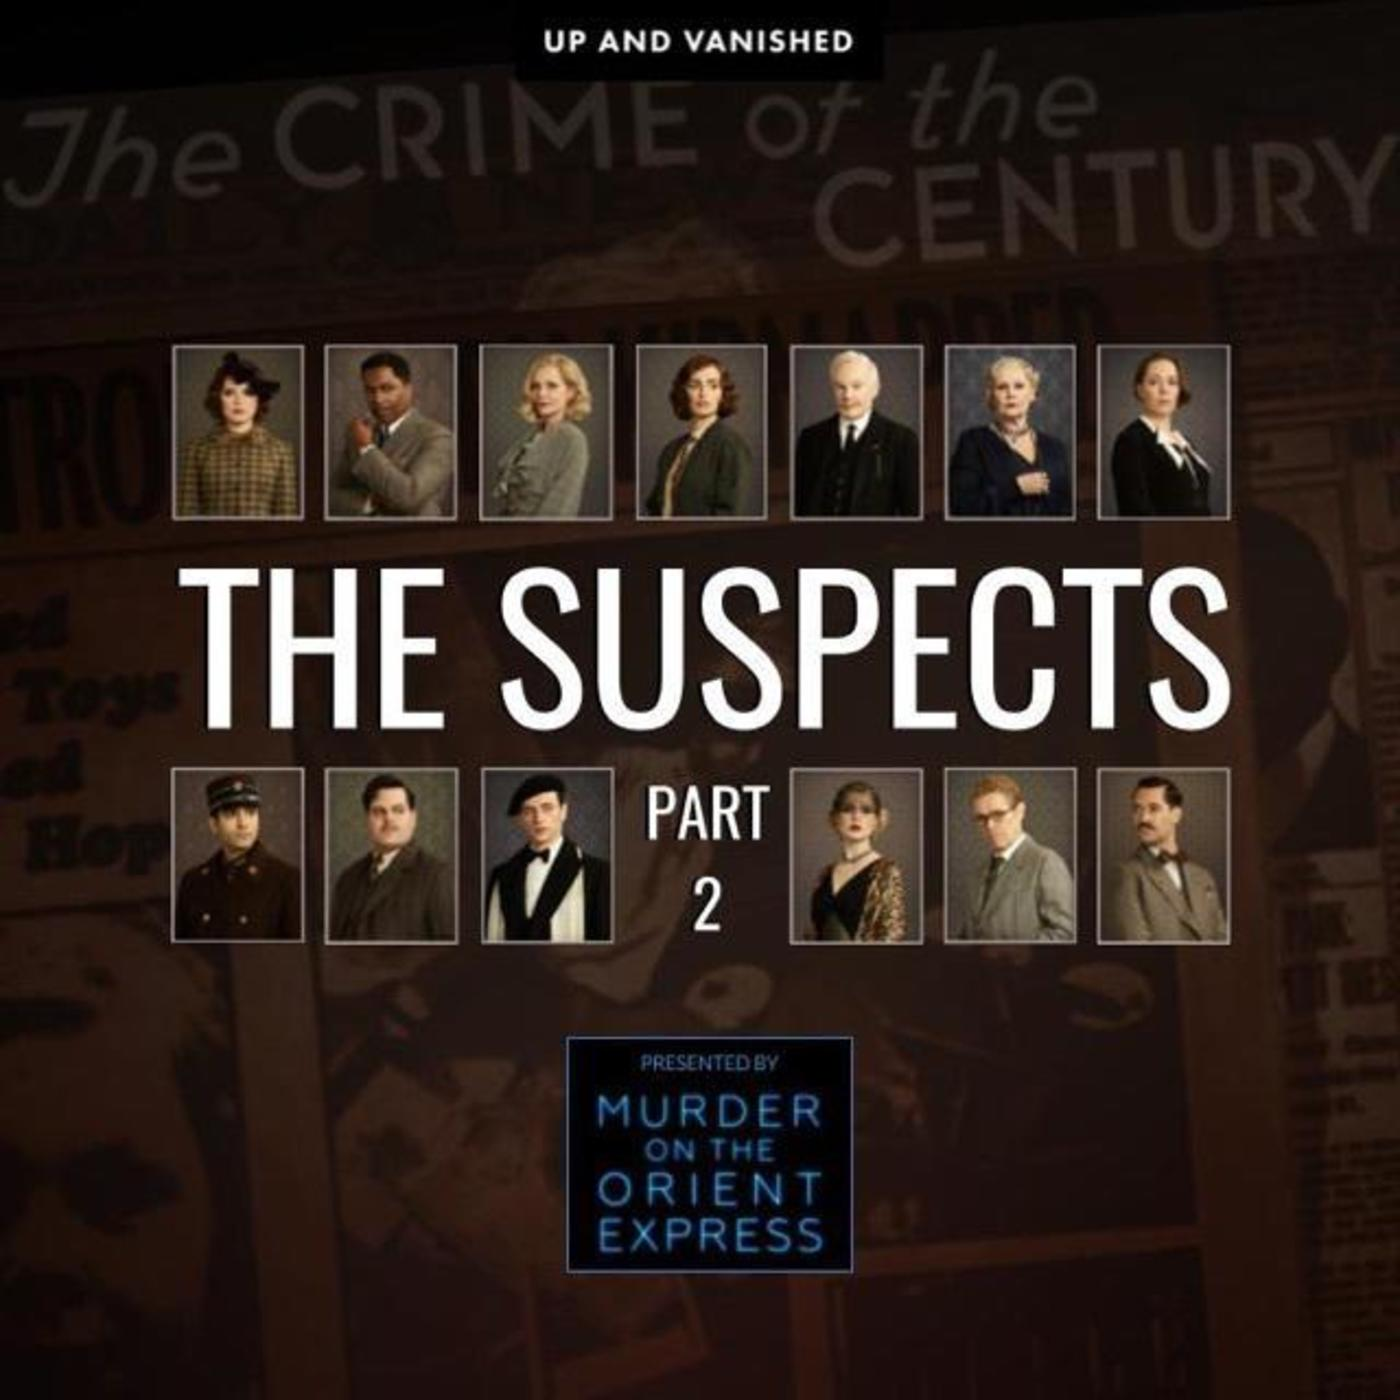 S E : The Suspects : Part 2 - Presented by Up and Vanished and Murder On the Orient Express